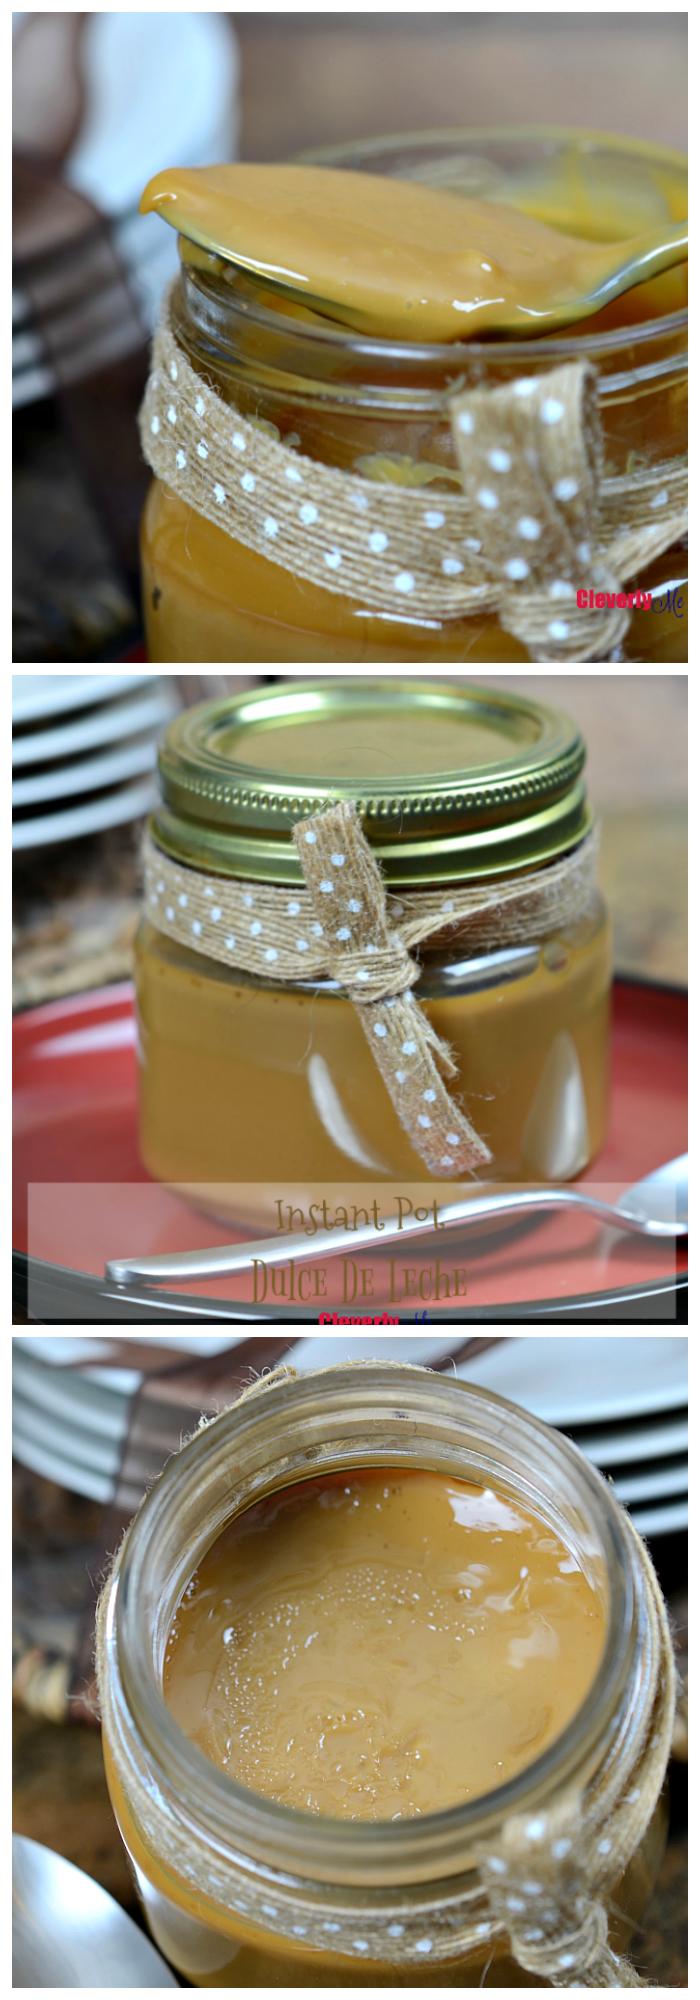 Make sure you grab a few sweetened condensed milk cans and make this Instant Pot Dulce De Leche recipe and enjoy it in your cheesecakes or as toppings in your ice cream or fruits. Recipe at CleverlyMe.com